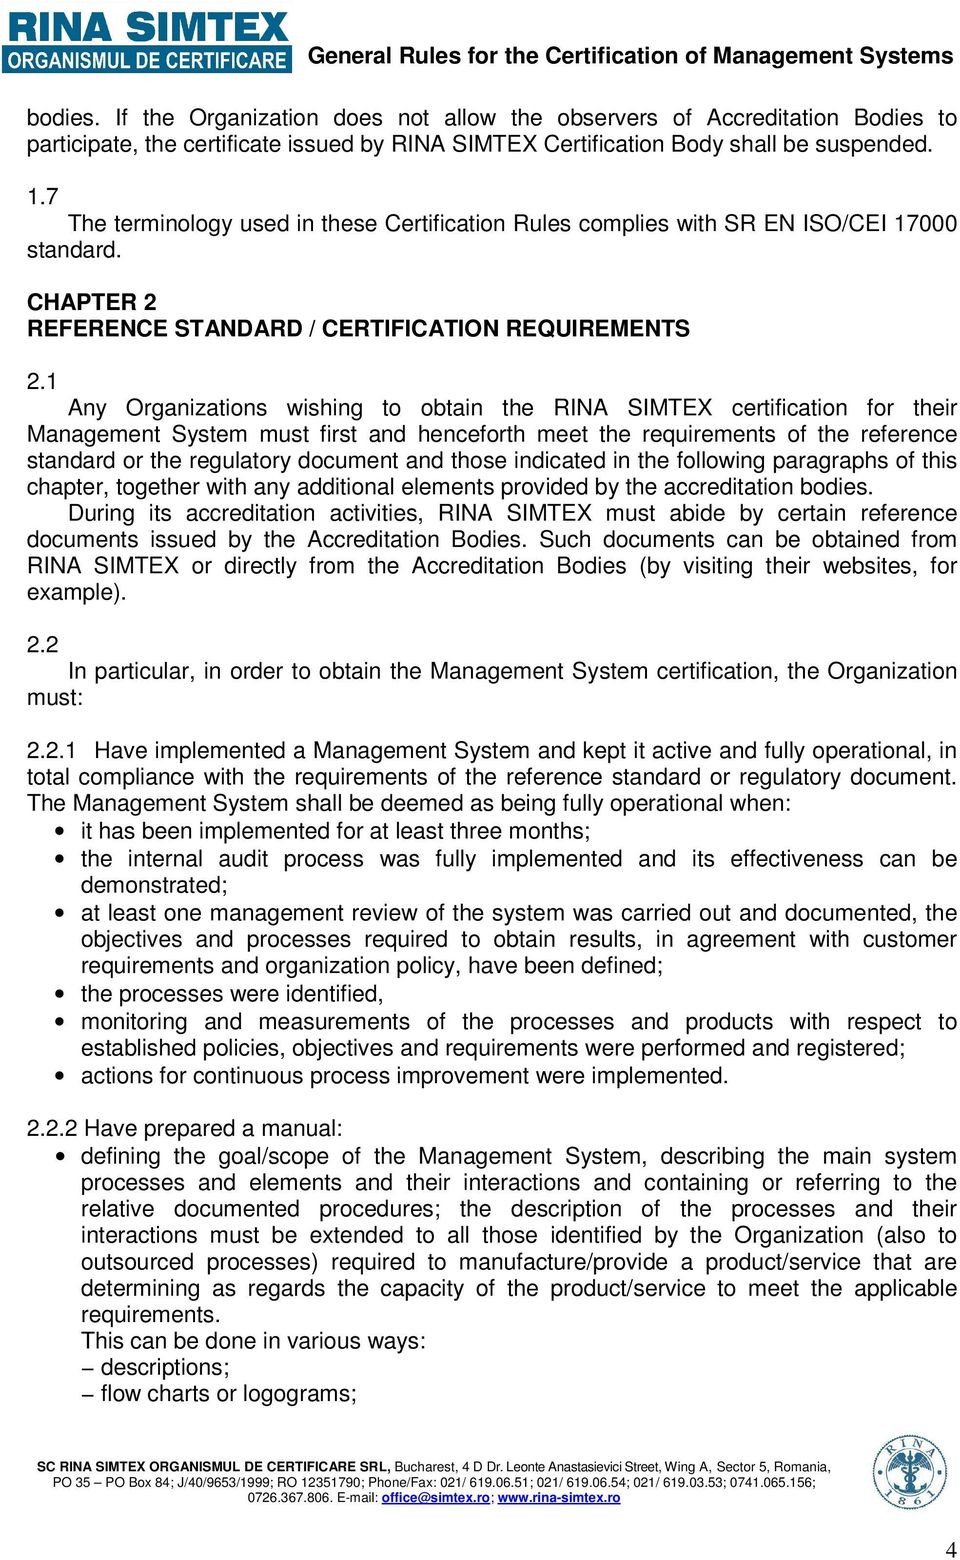 1 Any Organizations wishing to obtain the RINA SIMTEX certification for their Management System must first and henceforth meet the requirements of the reference standard or the regulatory document